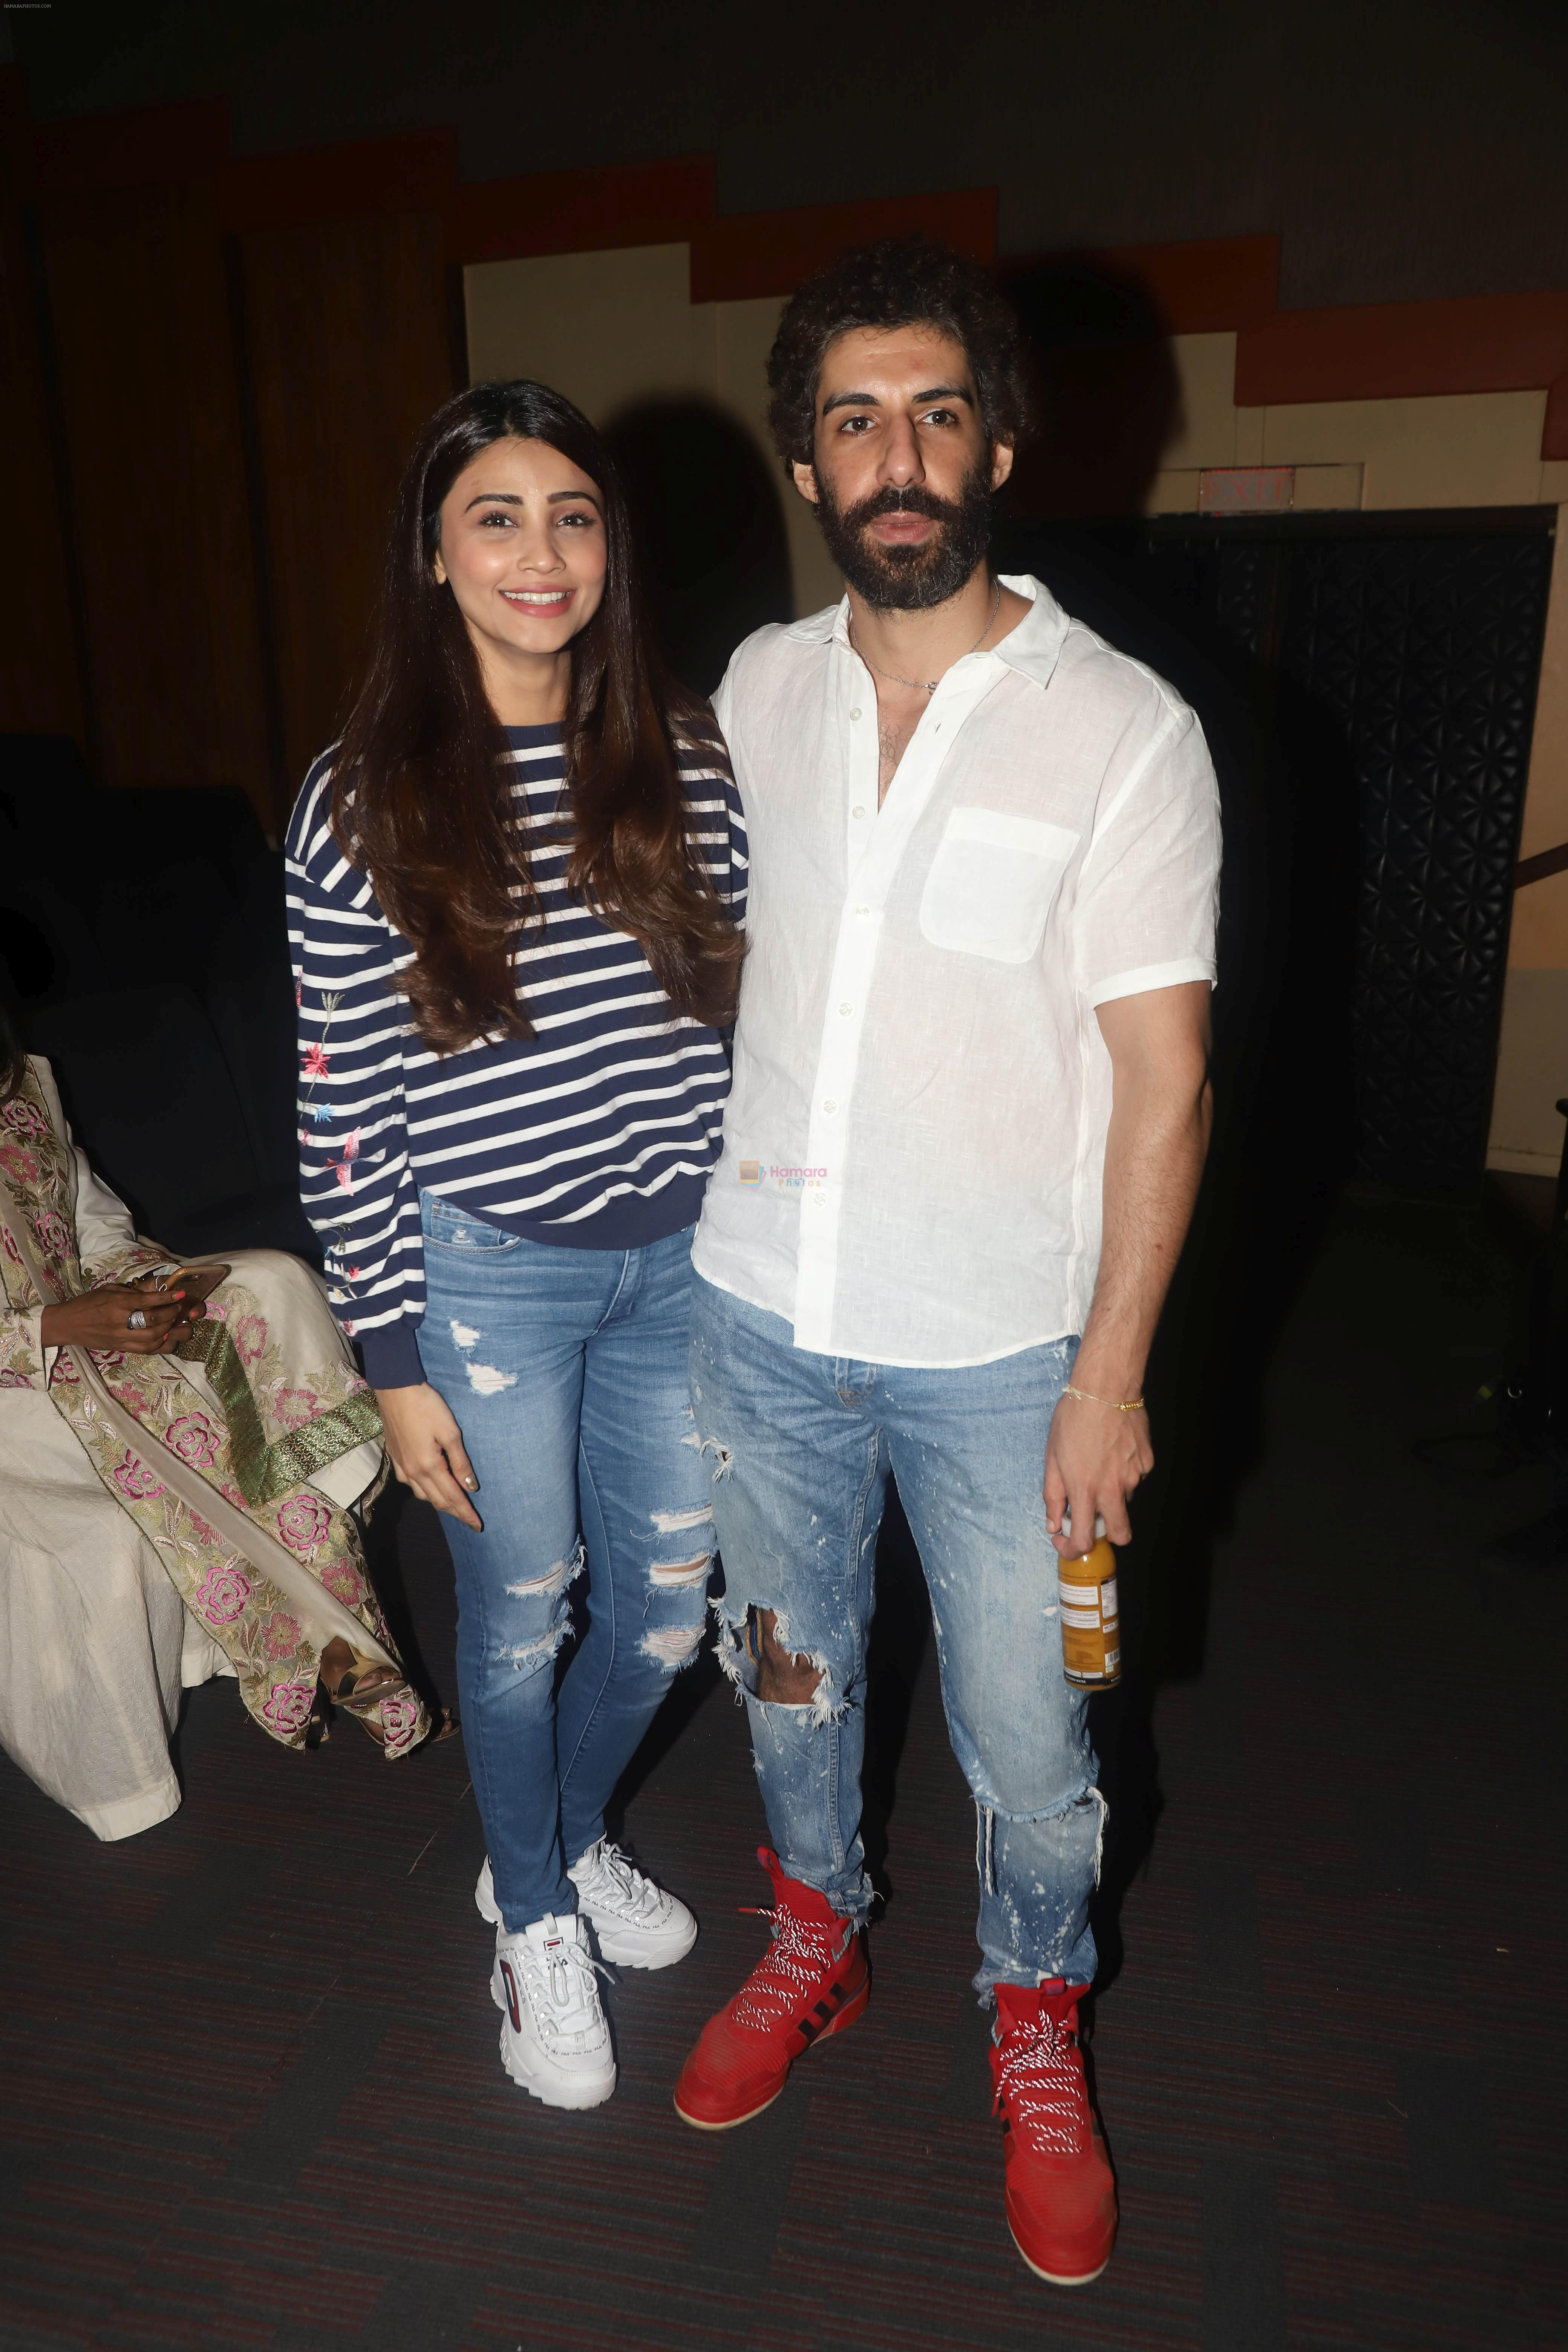 Daisy Shah and Jim Sarbh At DANCE WITH JOY 2019- Initiative of Arts in Motion Annual show on 5th July 2019